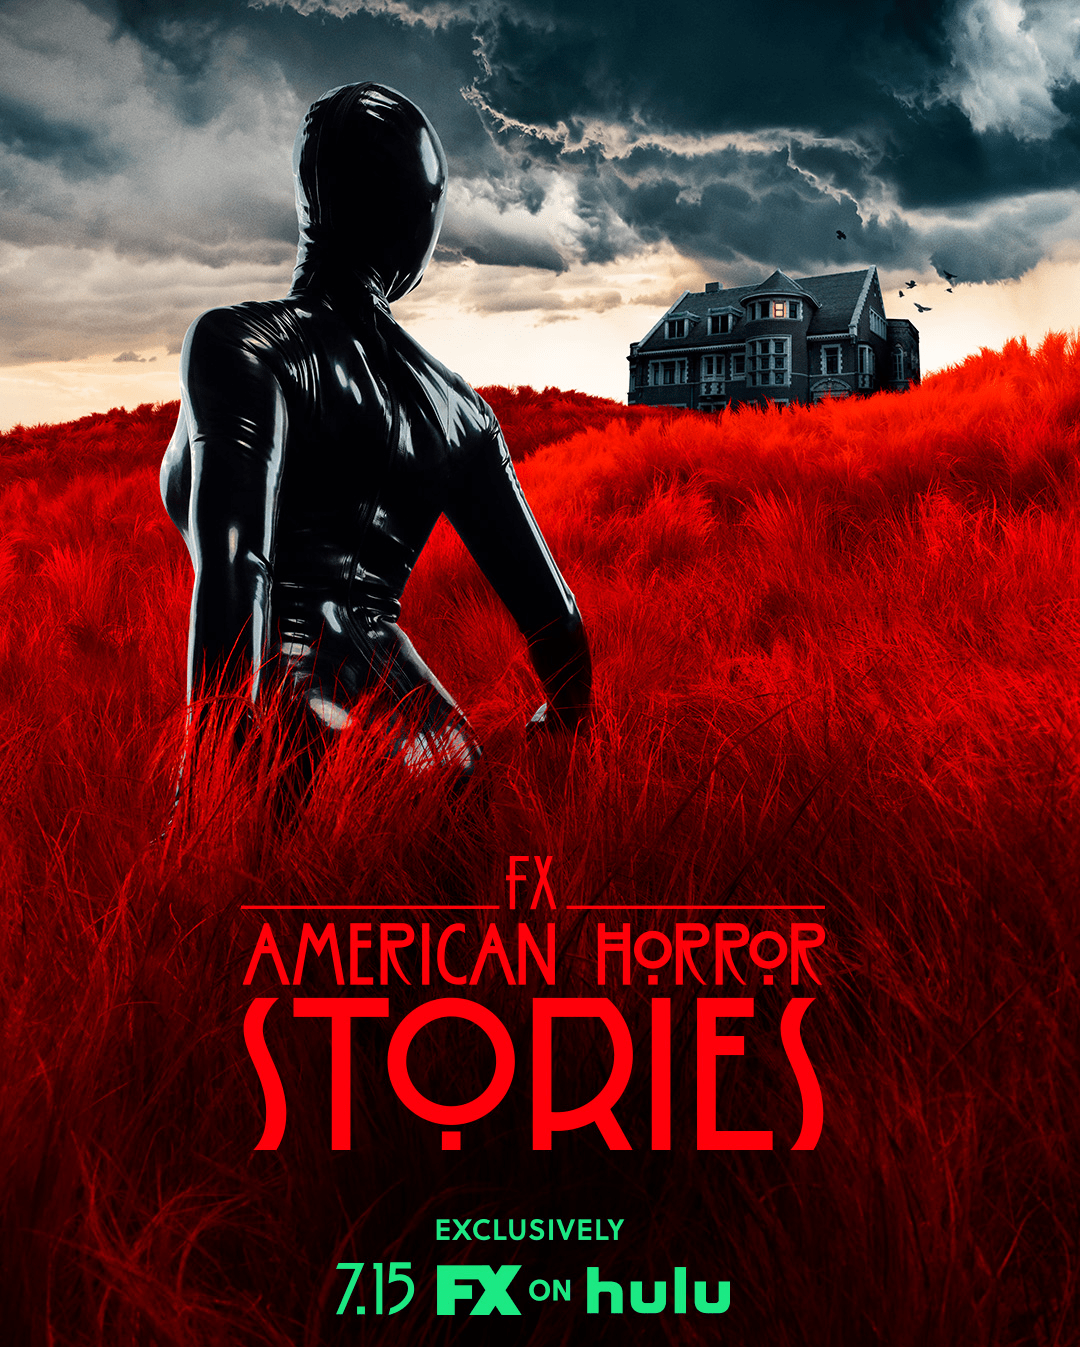 american-horror-stories-poster